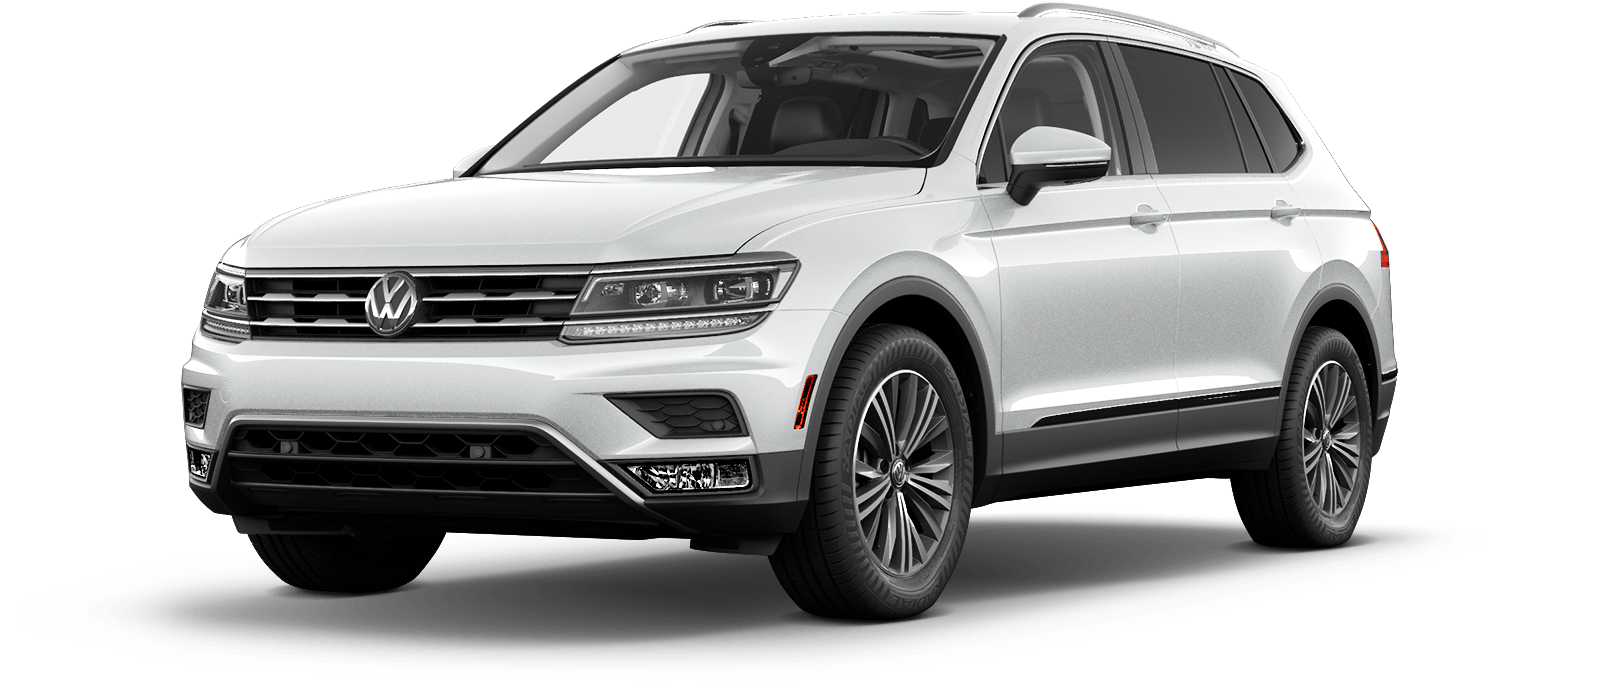 2018 VW Tiguan White Silver Metallic